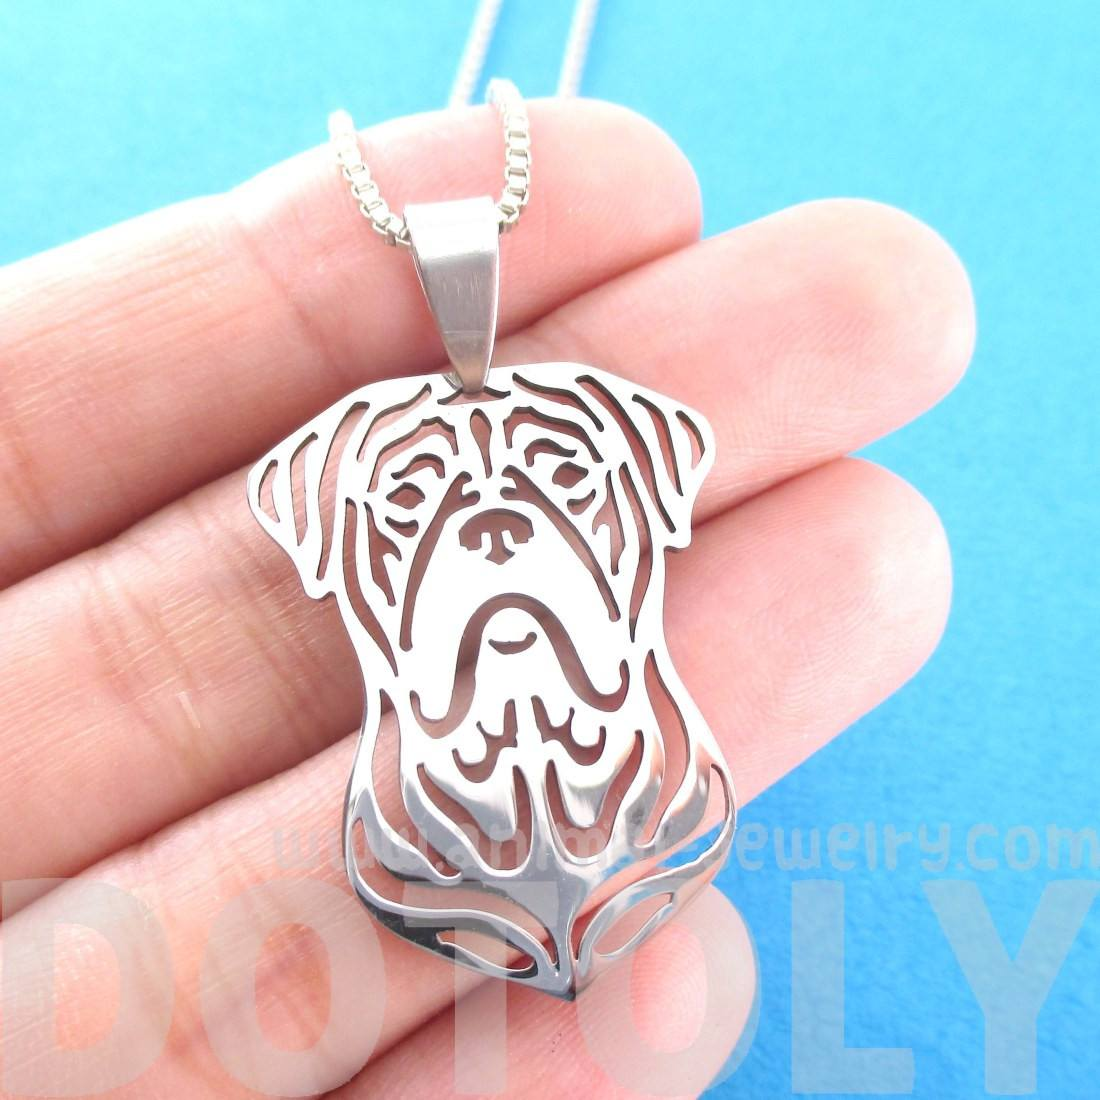 Bordeauxdog Shaped Cut Out Pendant Necklace in Silver